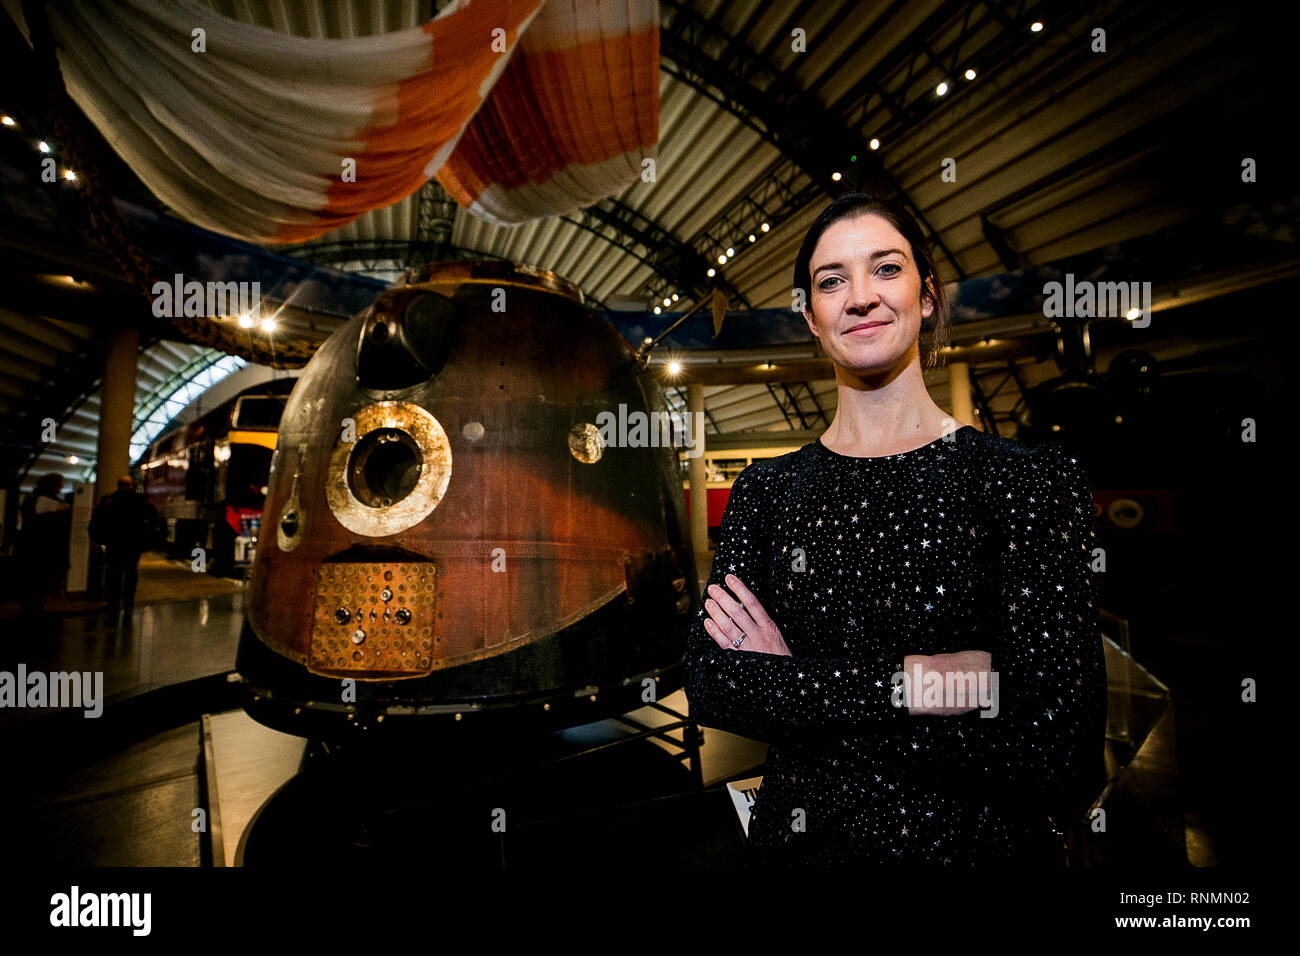 Dr. Norah Patten stands beside British astronaut Tim Peake's Soyuz TMA-19M capsule complete with equipped interior and char marks on its outer body from its re-entry into EarthÕs atmosphere, with the 25-metre diameter parachute used during it's high-speed descent back to Earth. The capsule and exhibition is viewable to the public at the Ulster Folk and Transport Museum in Cultra from February 20. - Stock Image